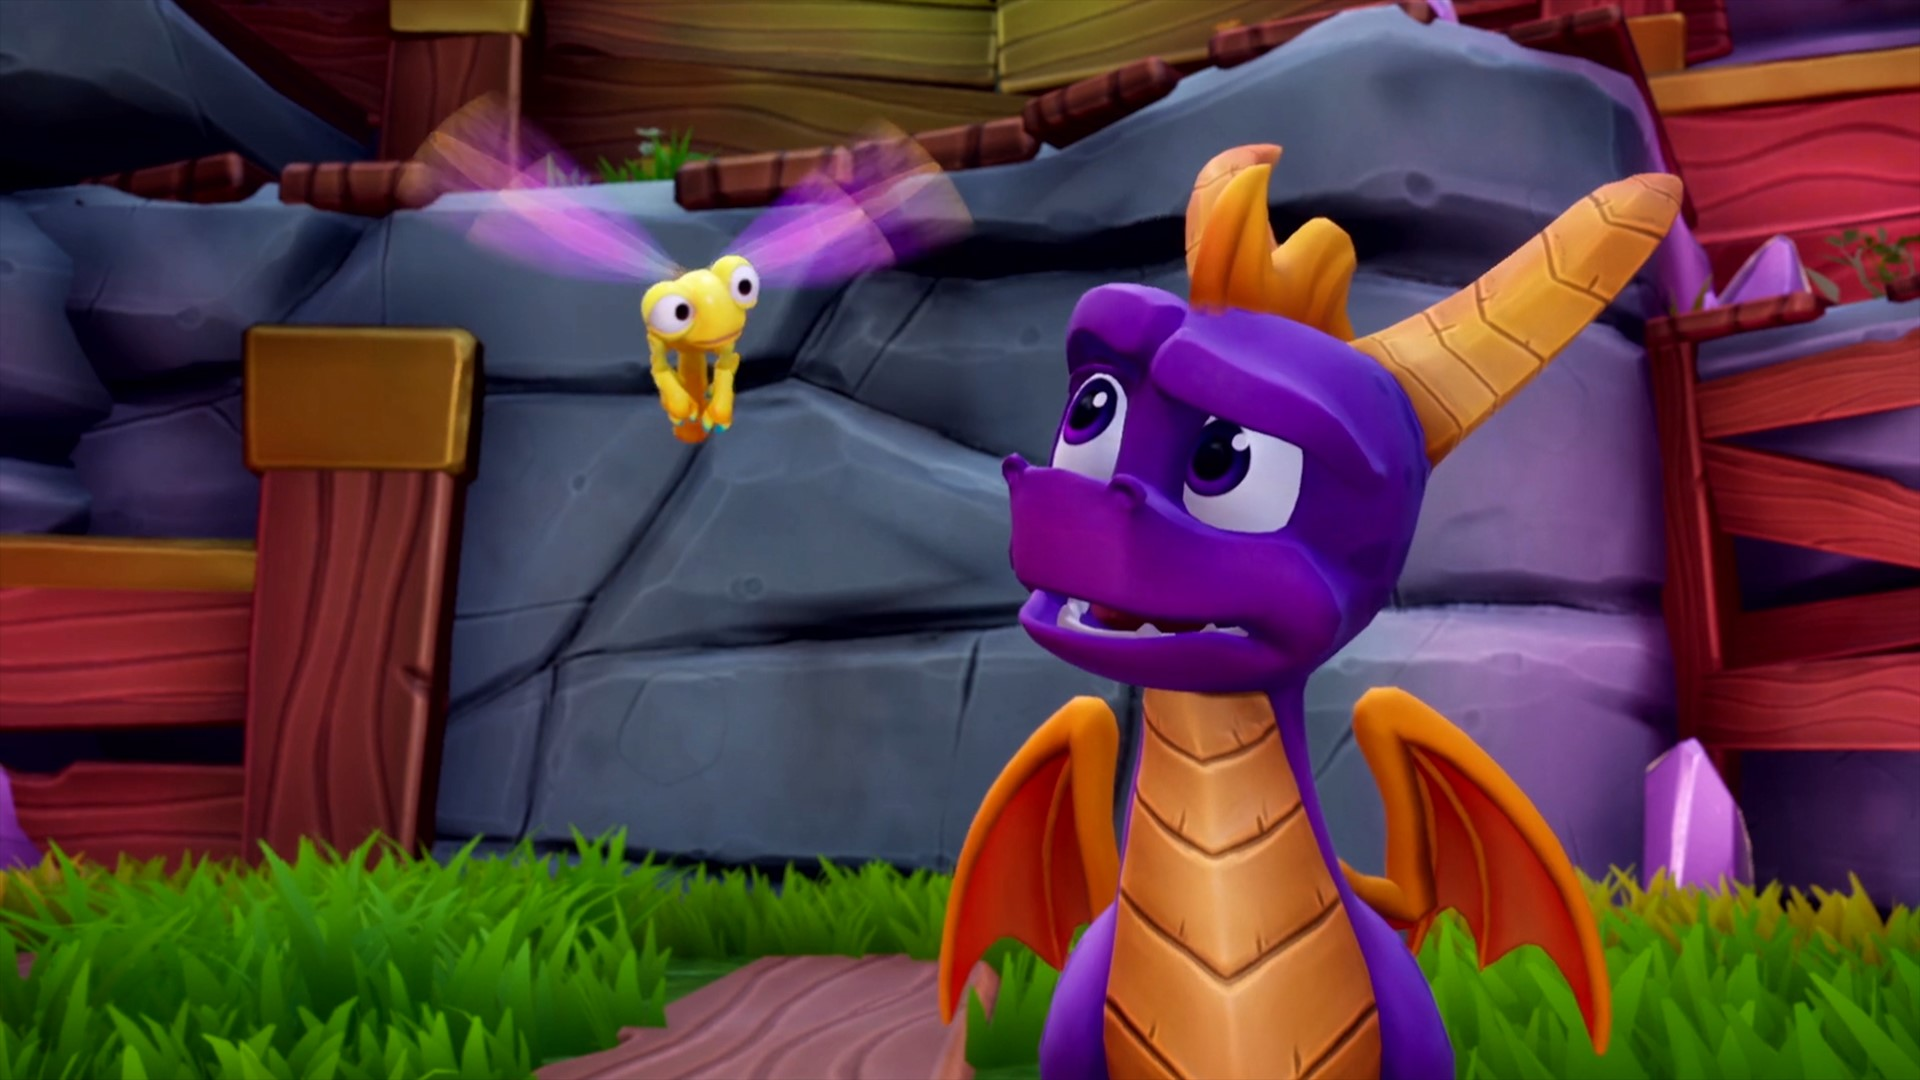 GameStop Leak Reveals Spyro Reignited Trilogy Switch Release